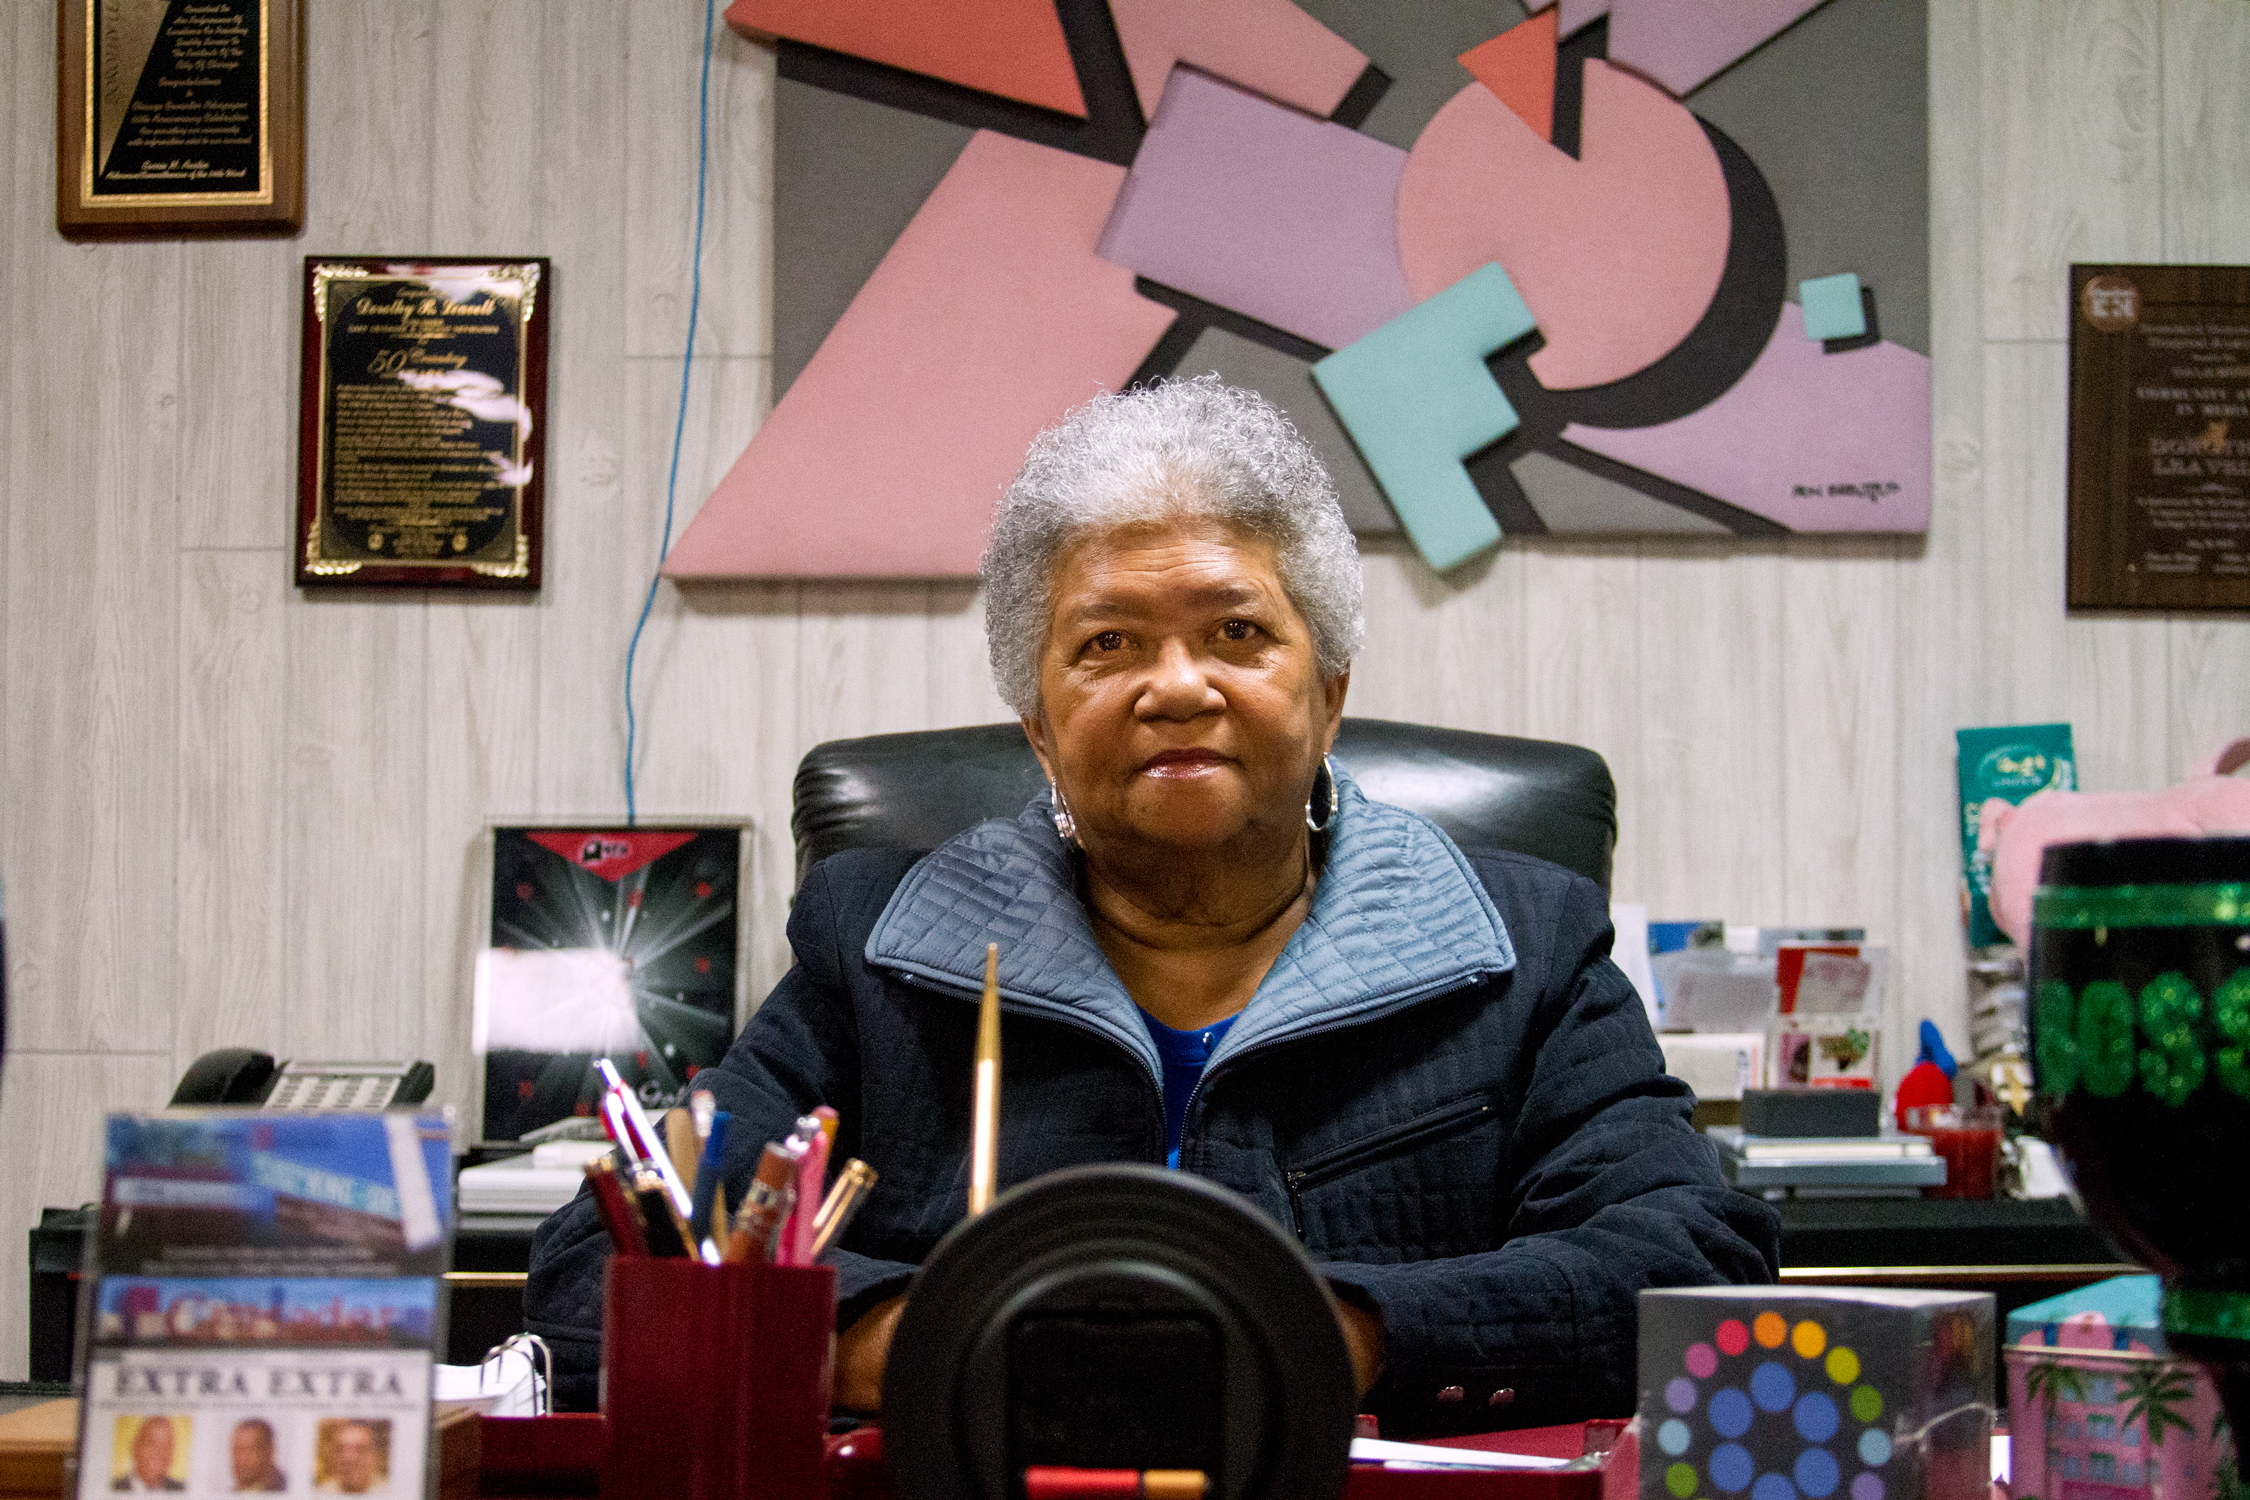 Dorothy Leavell, editor and publisher of the Chicago Crusader, a black newspaper across the street from Parkway Gardens, in her office on Feb. 27, 2017. (Andrew Gill/WBEZ)